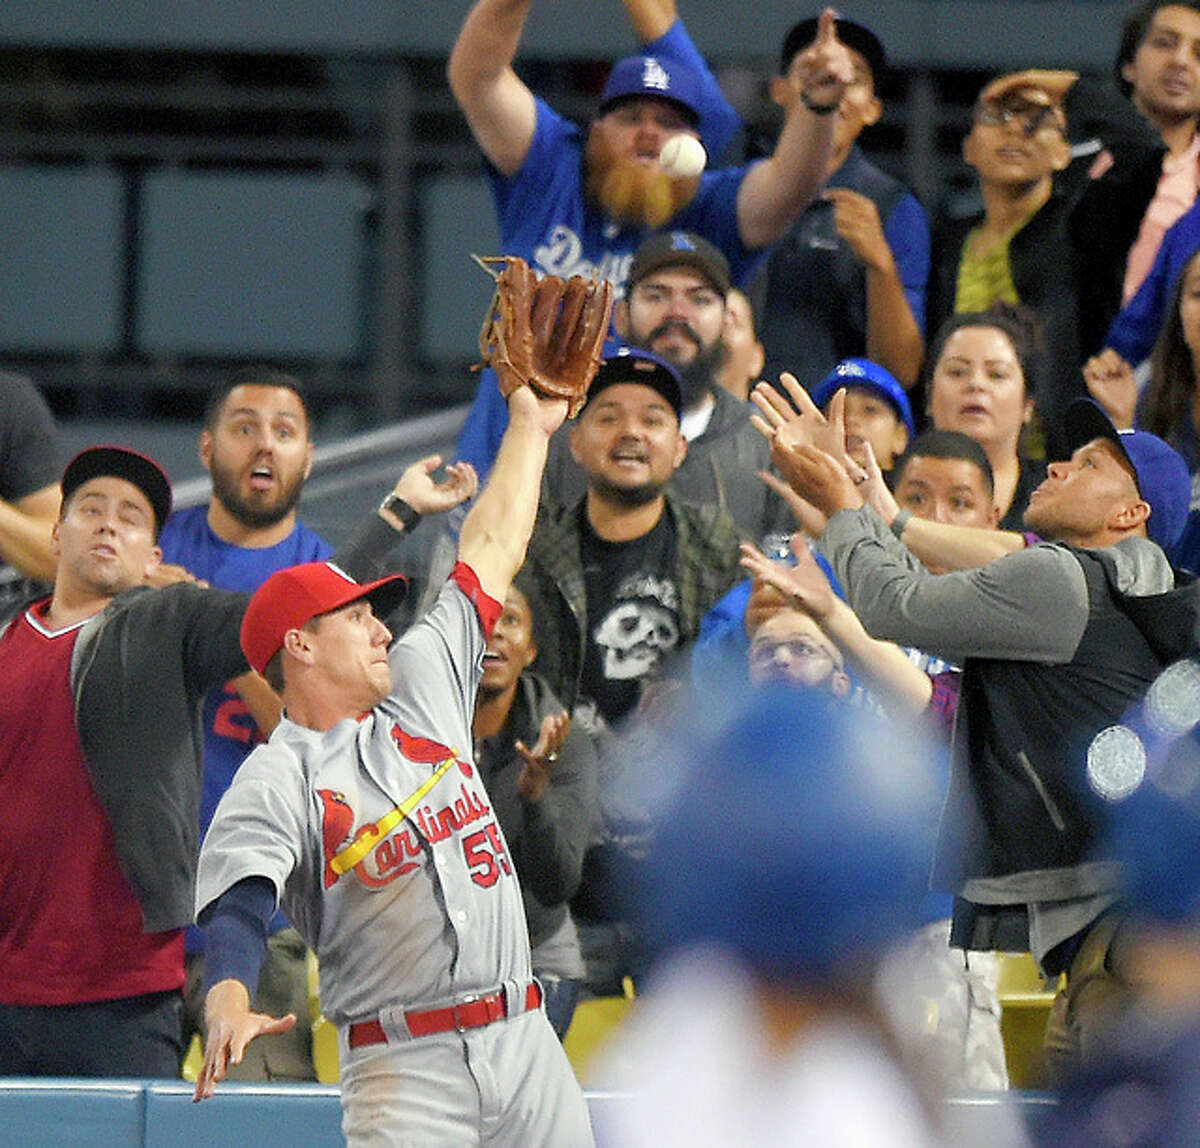 Cardinals right fielder Stephen Piscotty can't reach a ball hit by the Dodgers' Yasiel Puig for a solo home run in the sixth inning of Friday's game in Los Angeles.